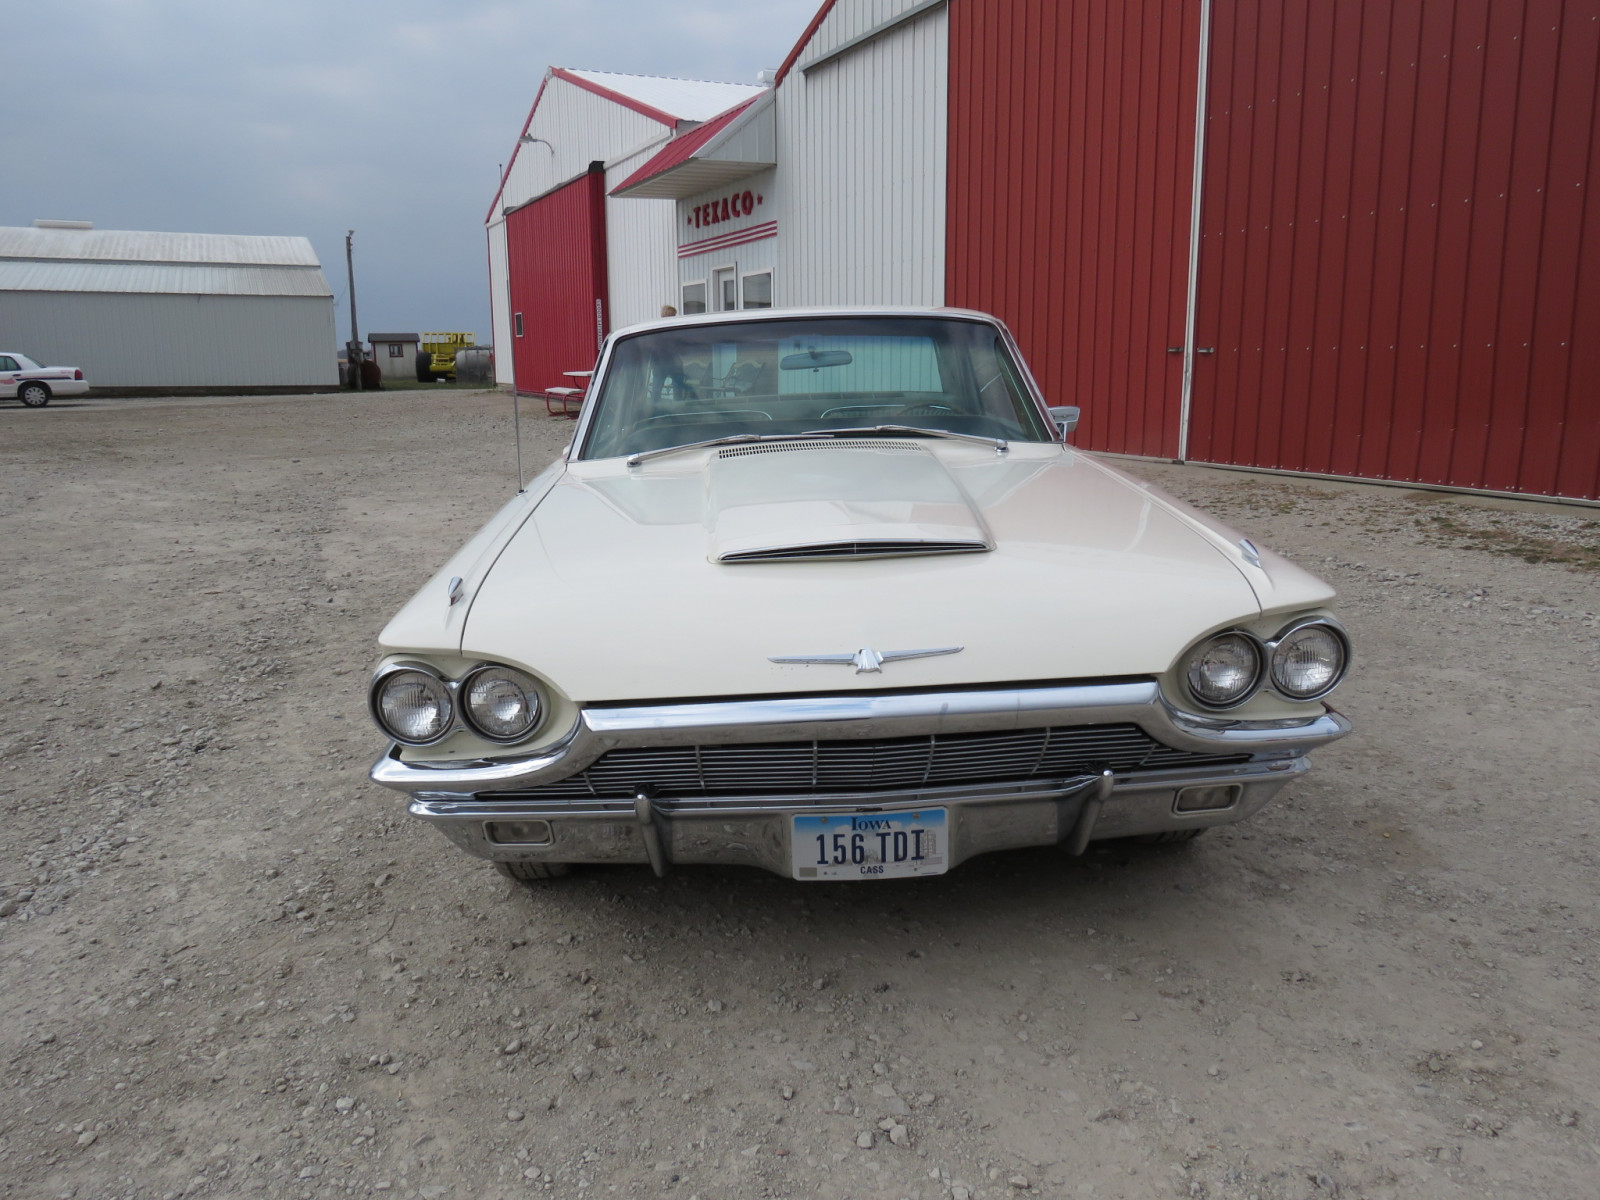 1965 Ford Thunderbird Coupe - Image 2